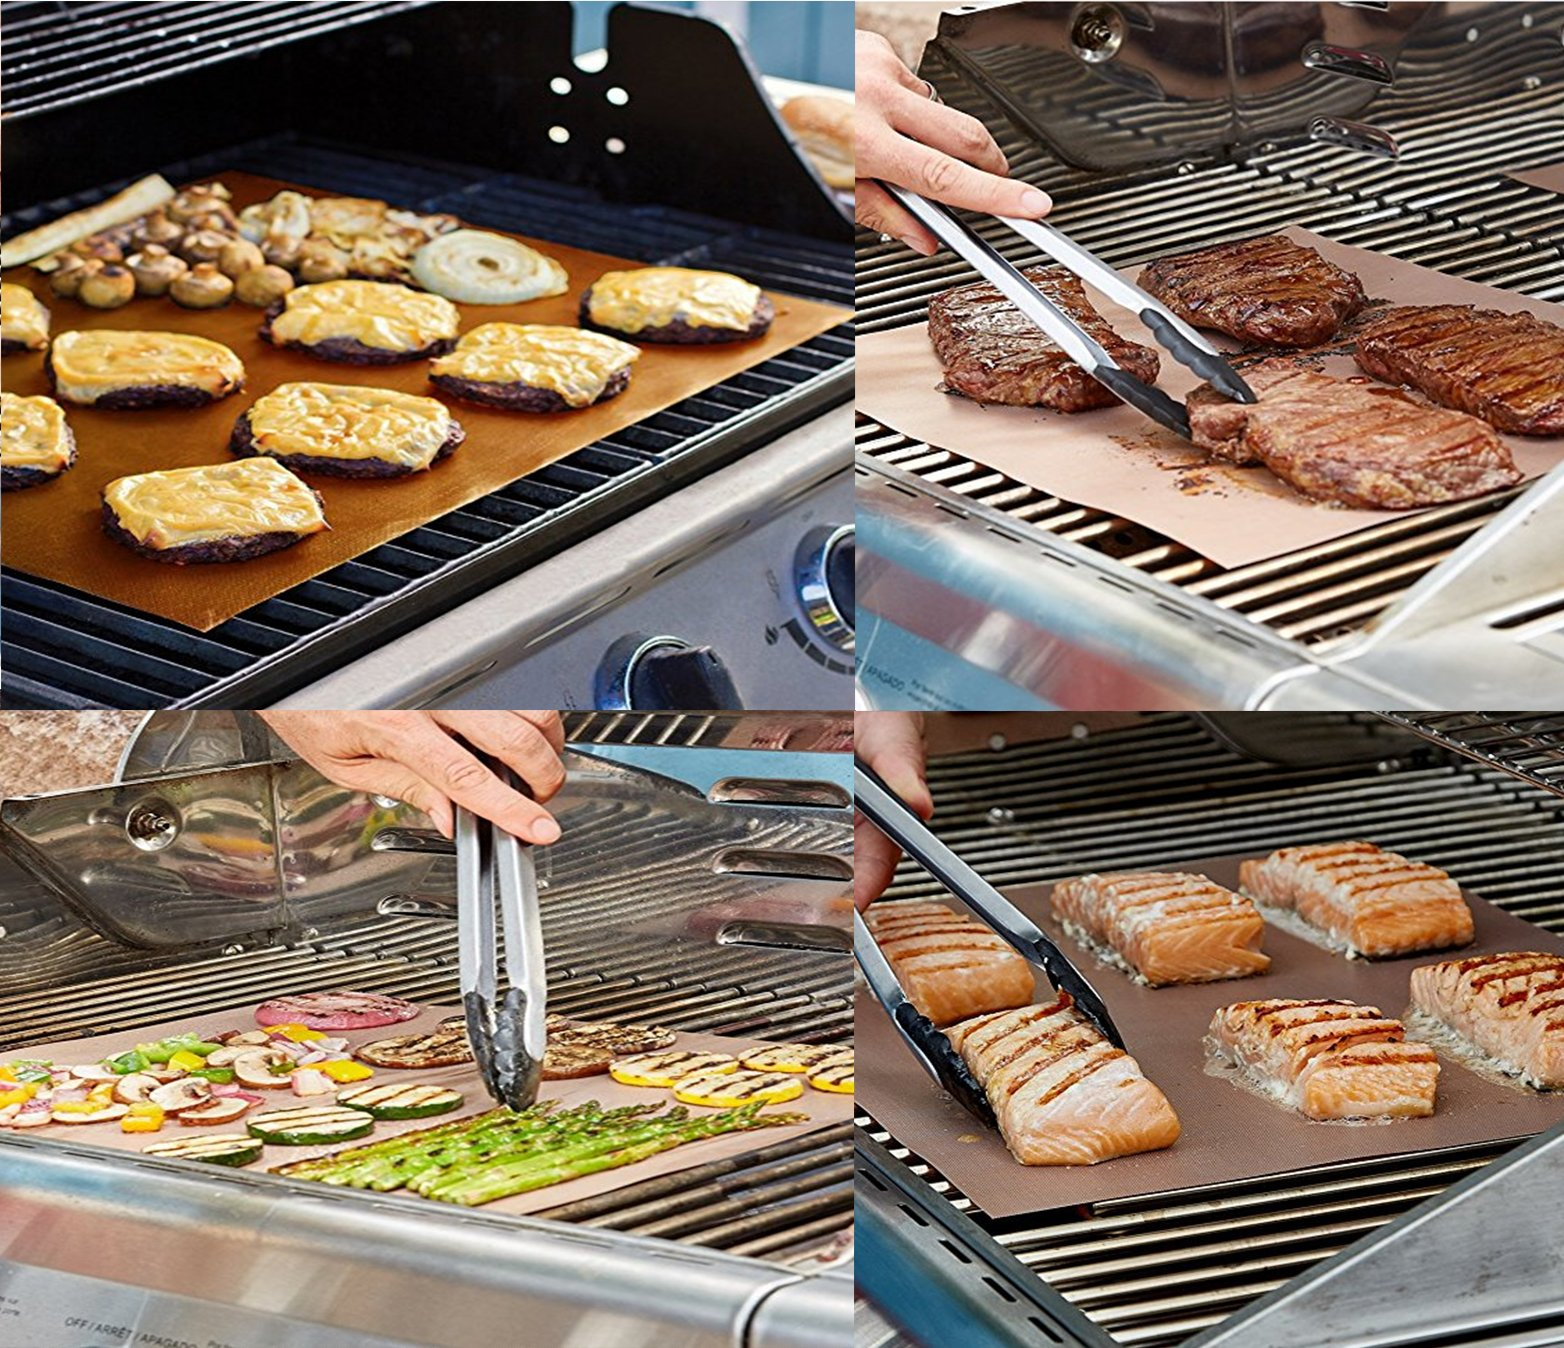 SMAID Copper Grill Mat Set of 4 - Non-Stick BBQ Grill Mats - FDA-Approved, Reusable and Easy To Clean - Works on Gas, Charcoal, Electric Grill and More - 15.75 x 13 Inch by SMAID (Image #3)